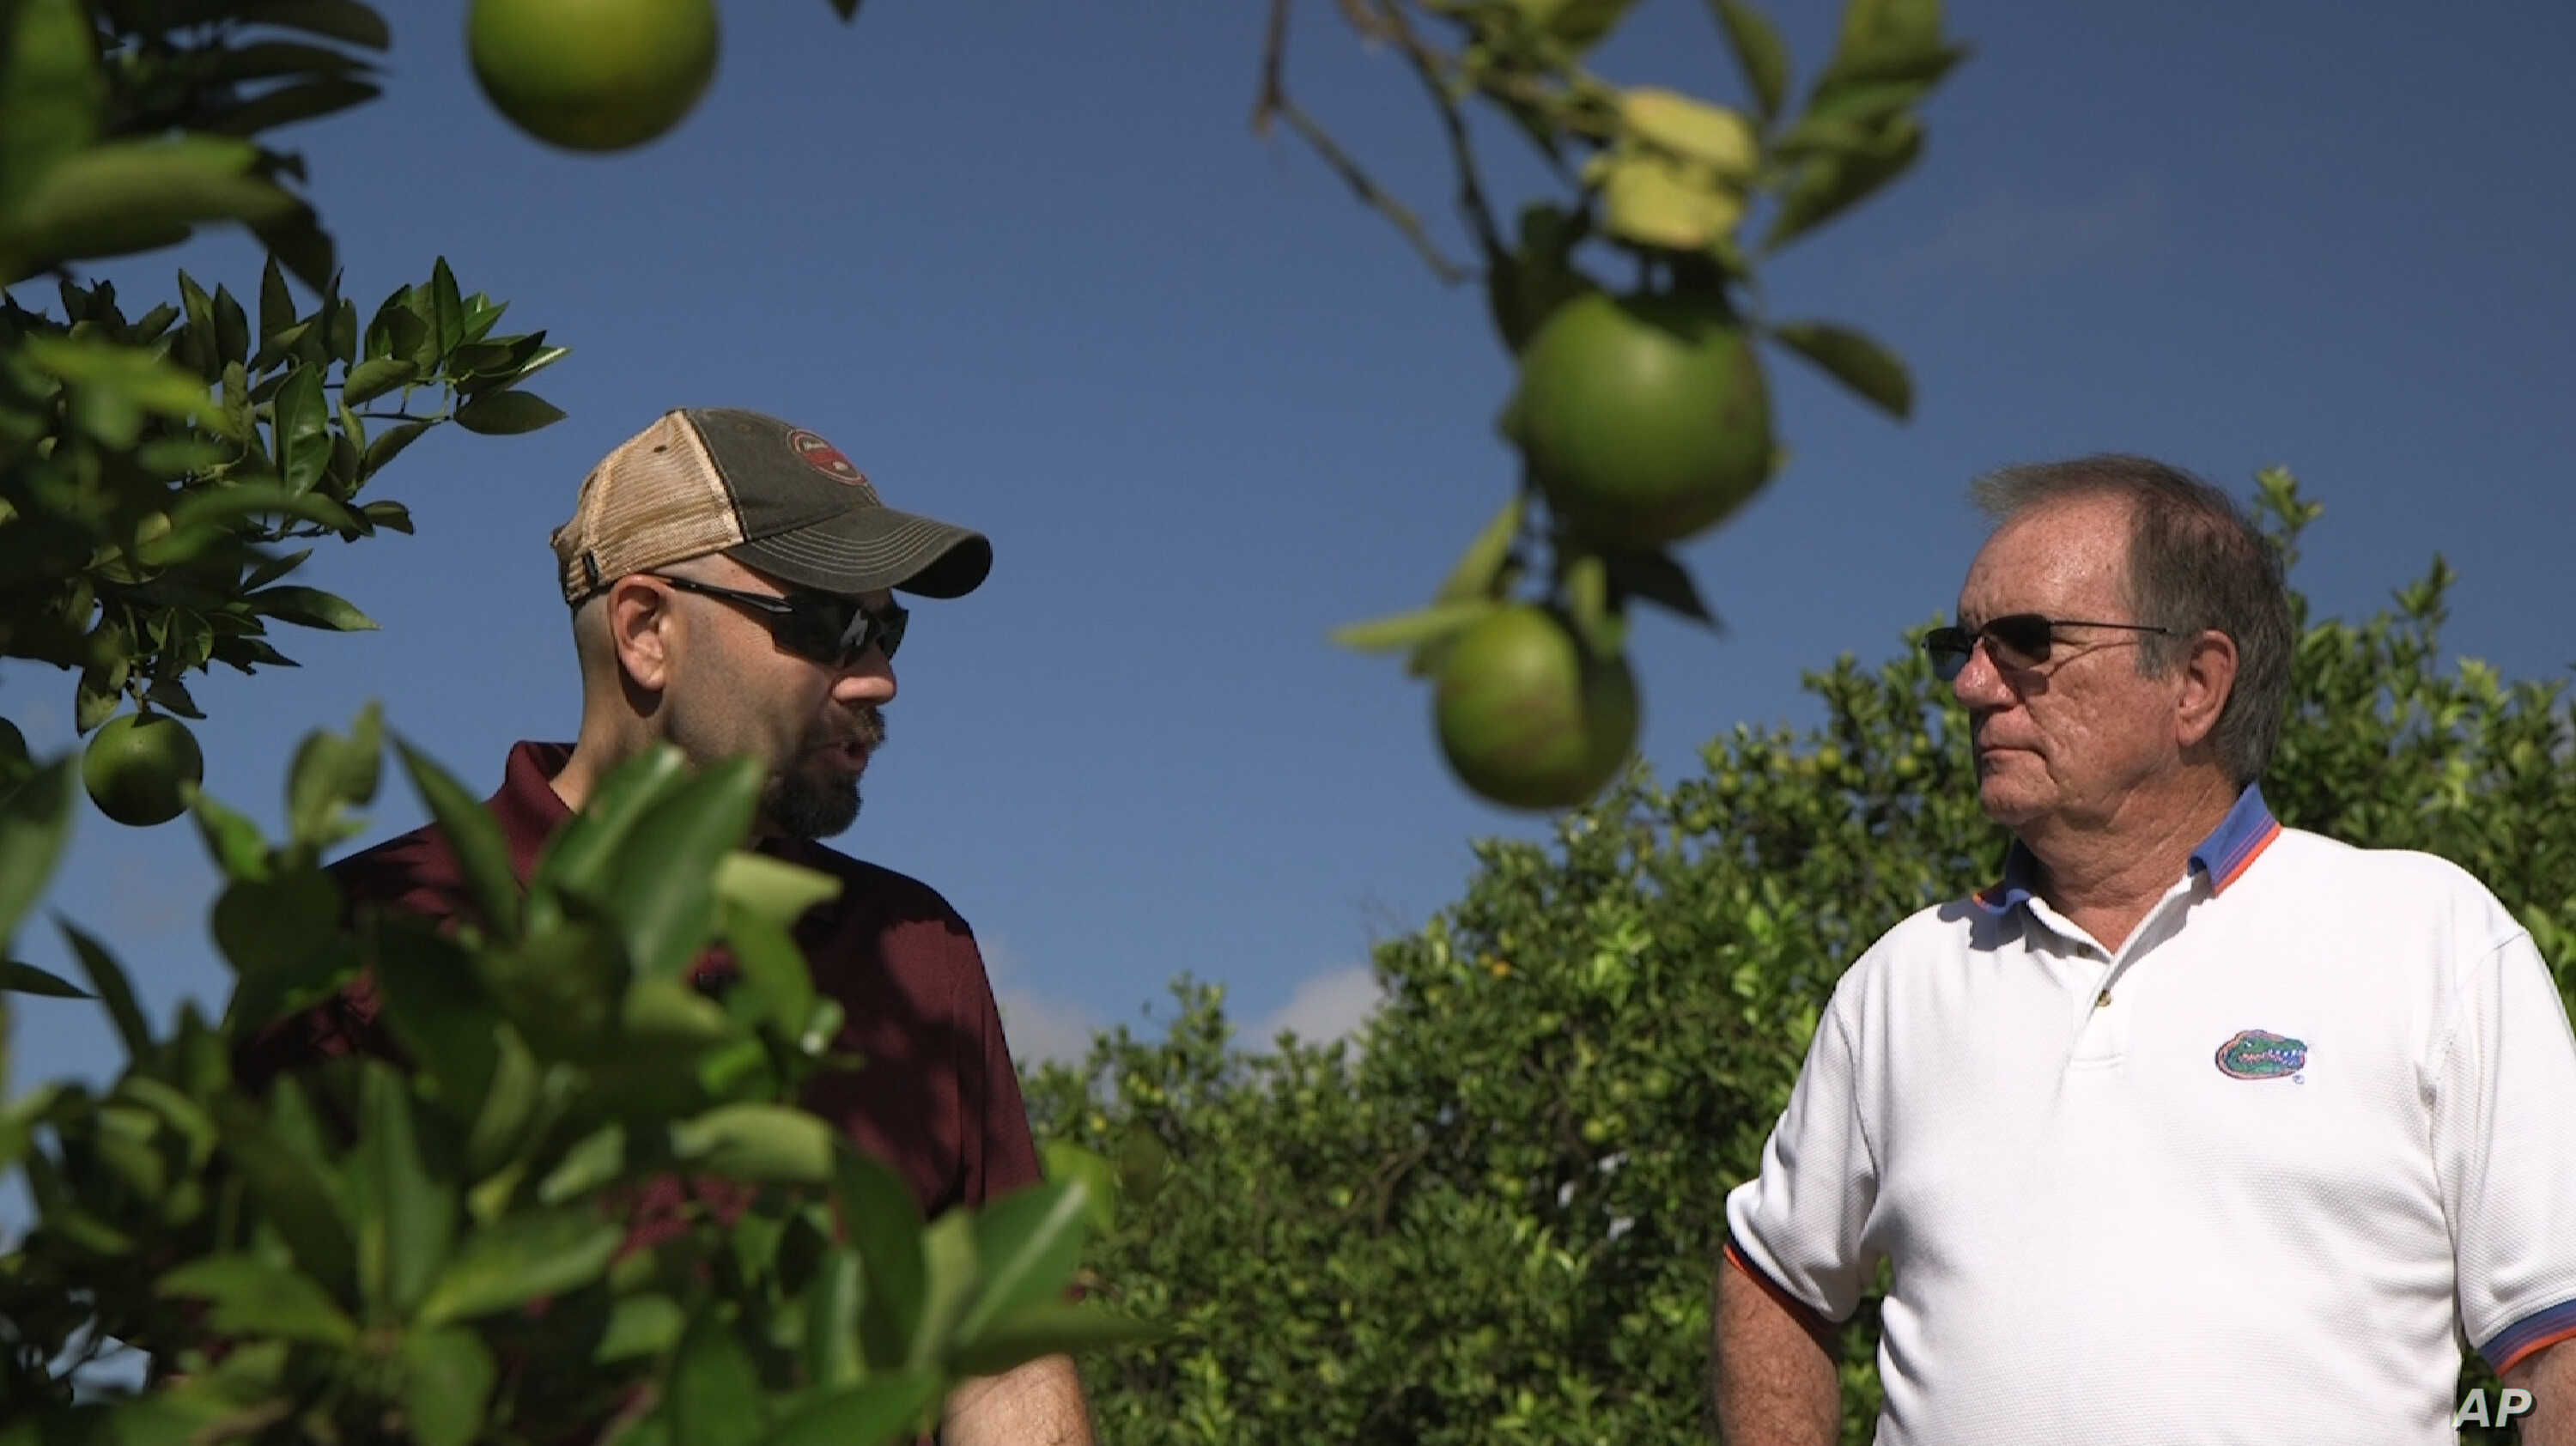 """Fred Gmitter, a geneticist at the University of Florida Citrus Research and Education Center, right, visits a citrus grower in an orange grove affected by citrus greening disease in Fort Meade, Fla., Sept. 27, 2018. """"If we can go in and edit the gene..."""